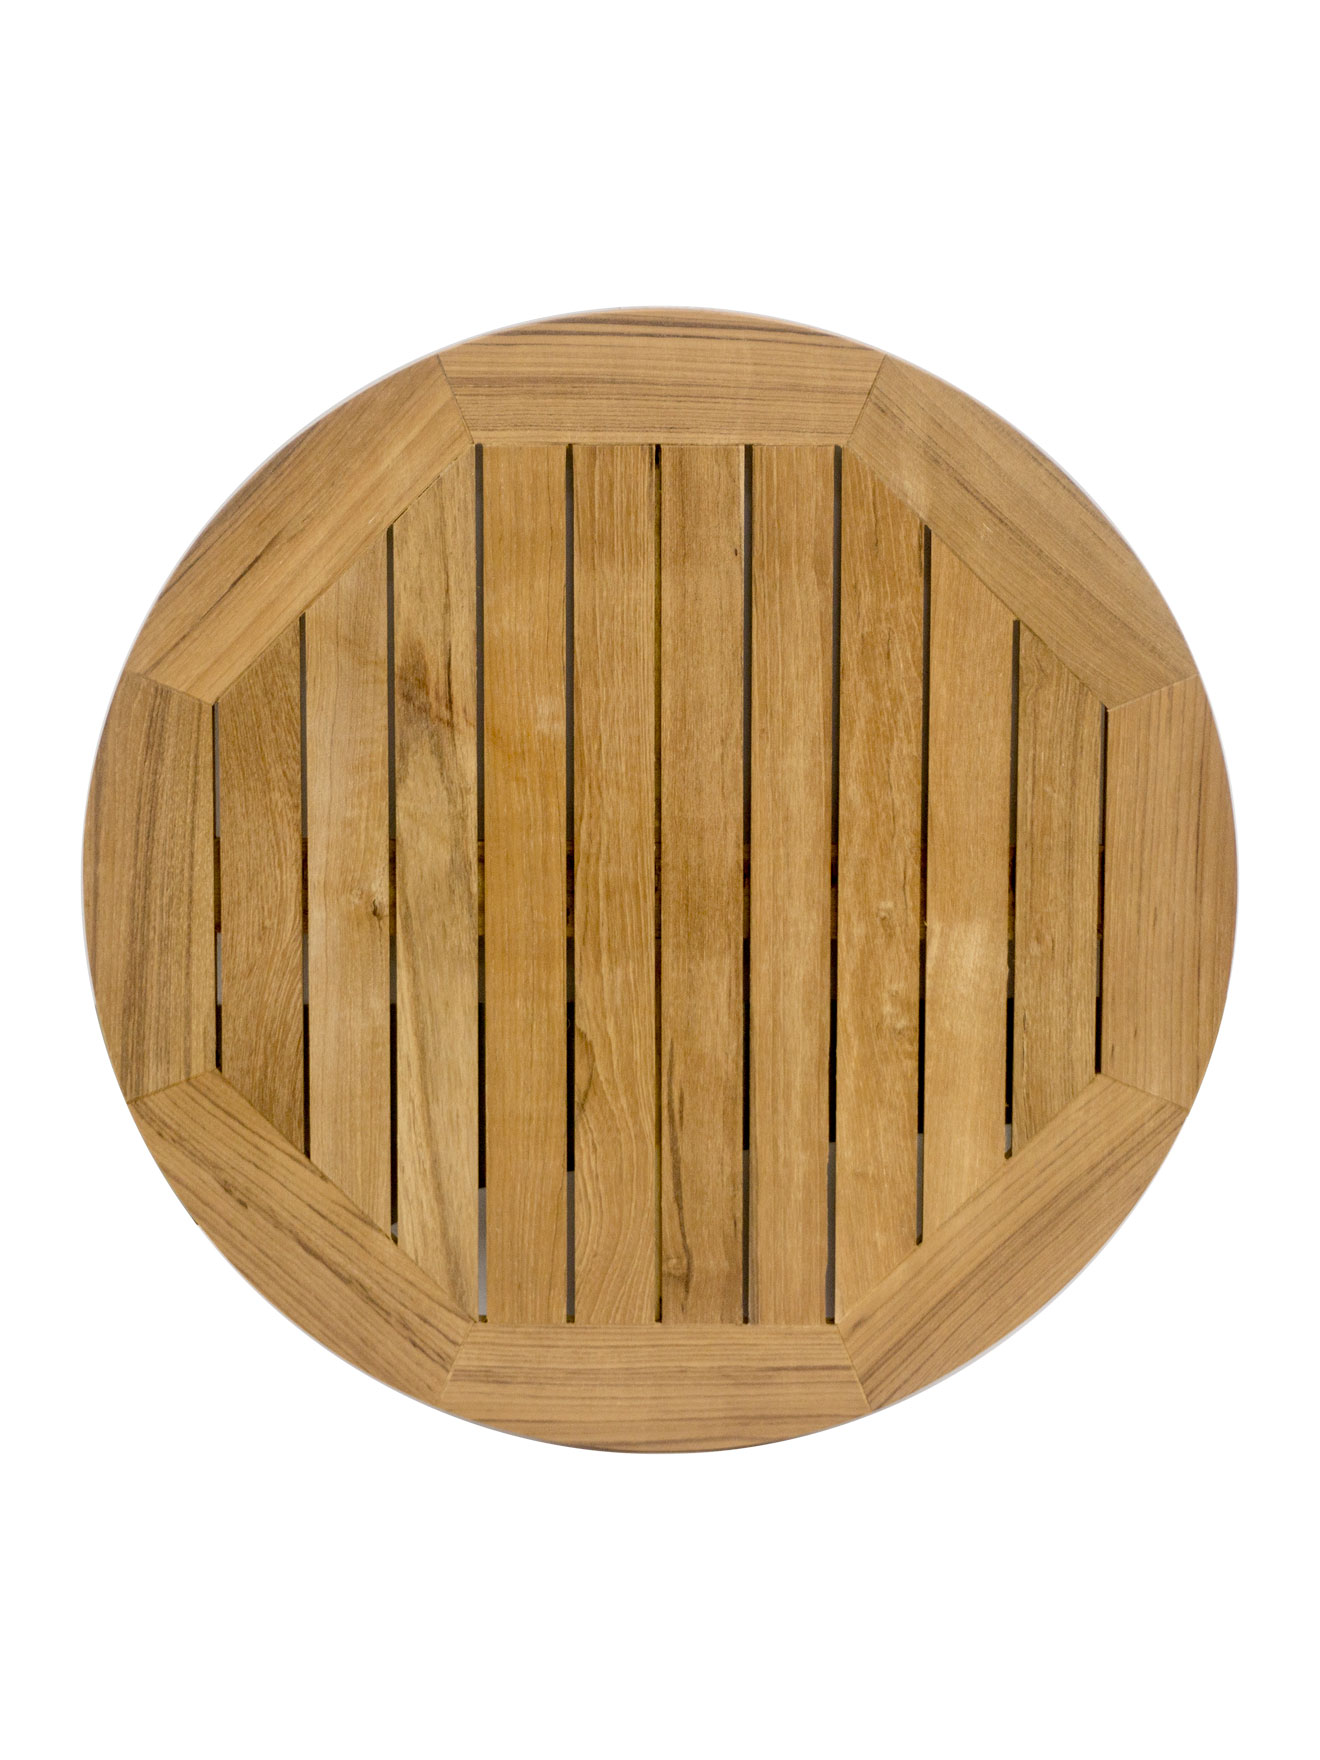 Real Teak Wood Round Indoor Outdoor Table Top Stkr